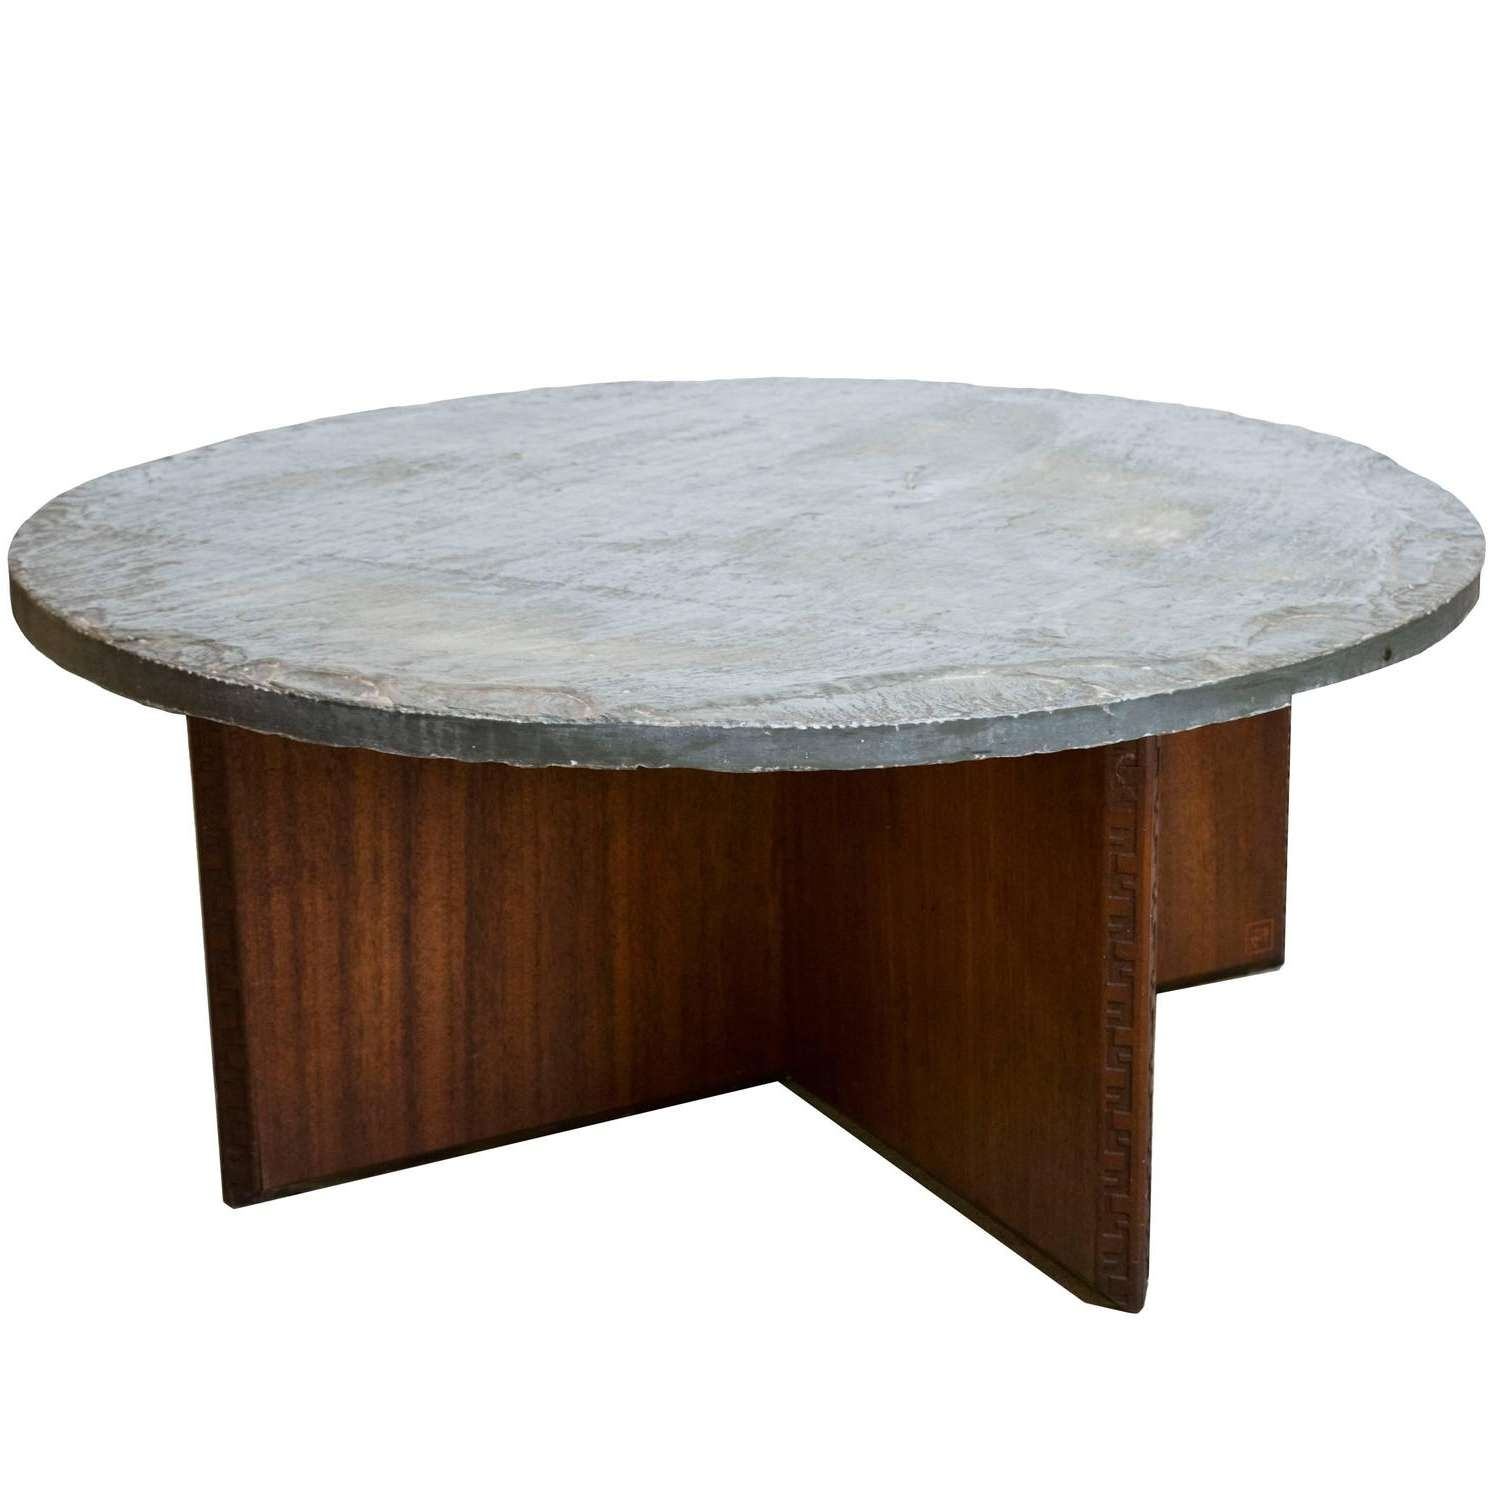 Newest Heritage Coffee Tables Throughout Frank Lloyd Wright For Henredon For Heritage Coffee Table With (View 14 of 20)